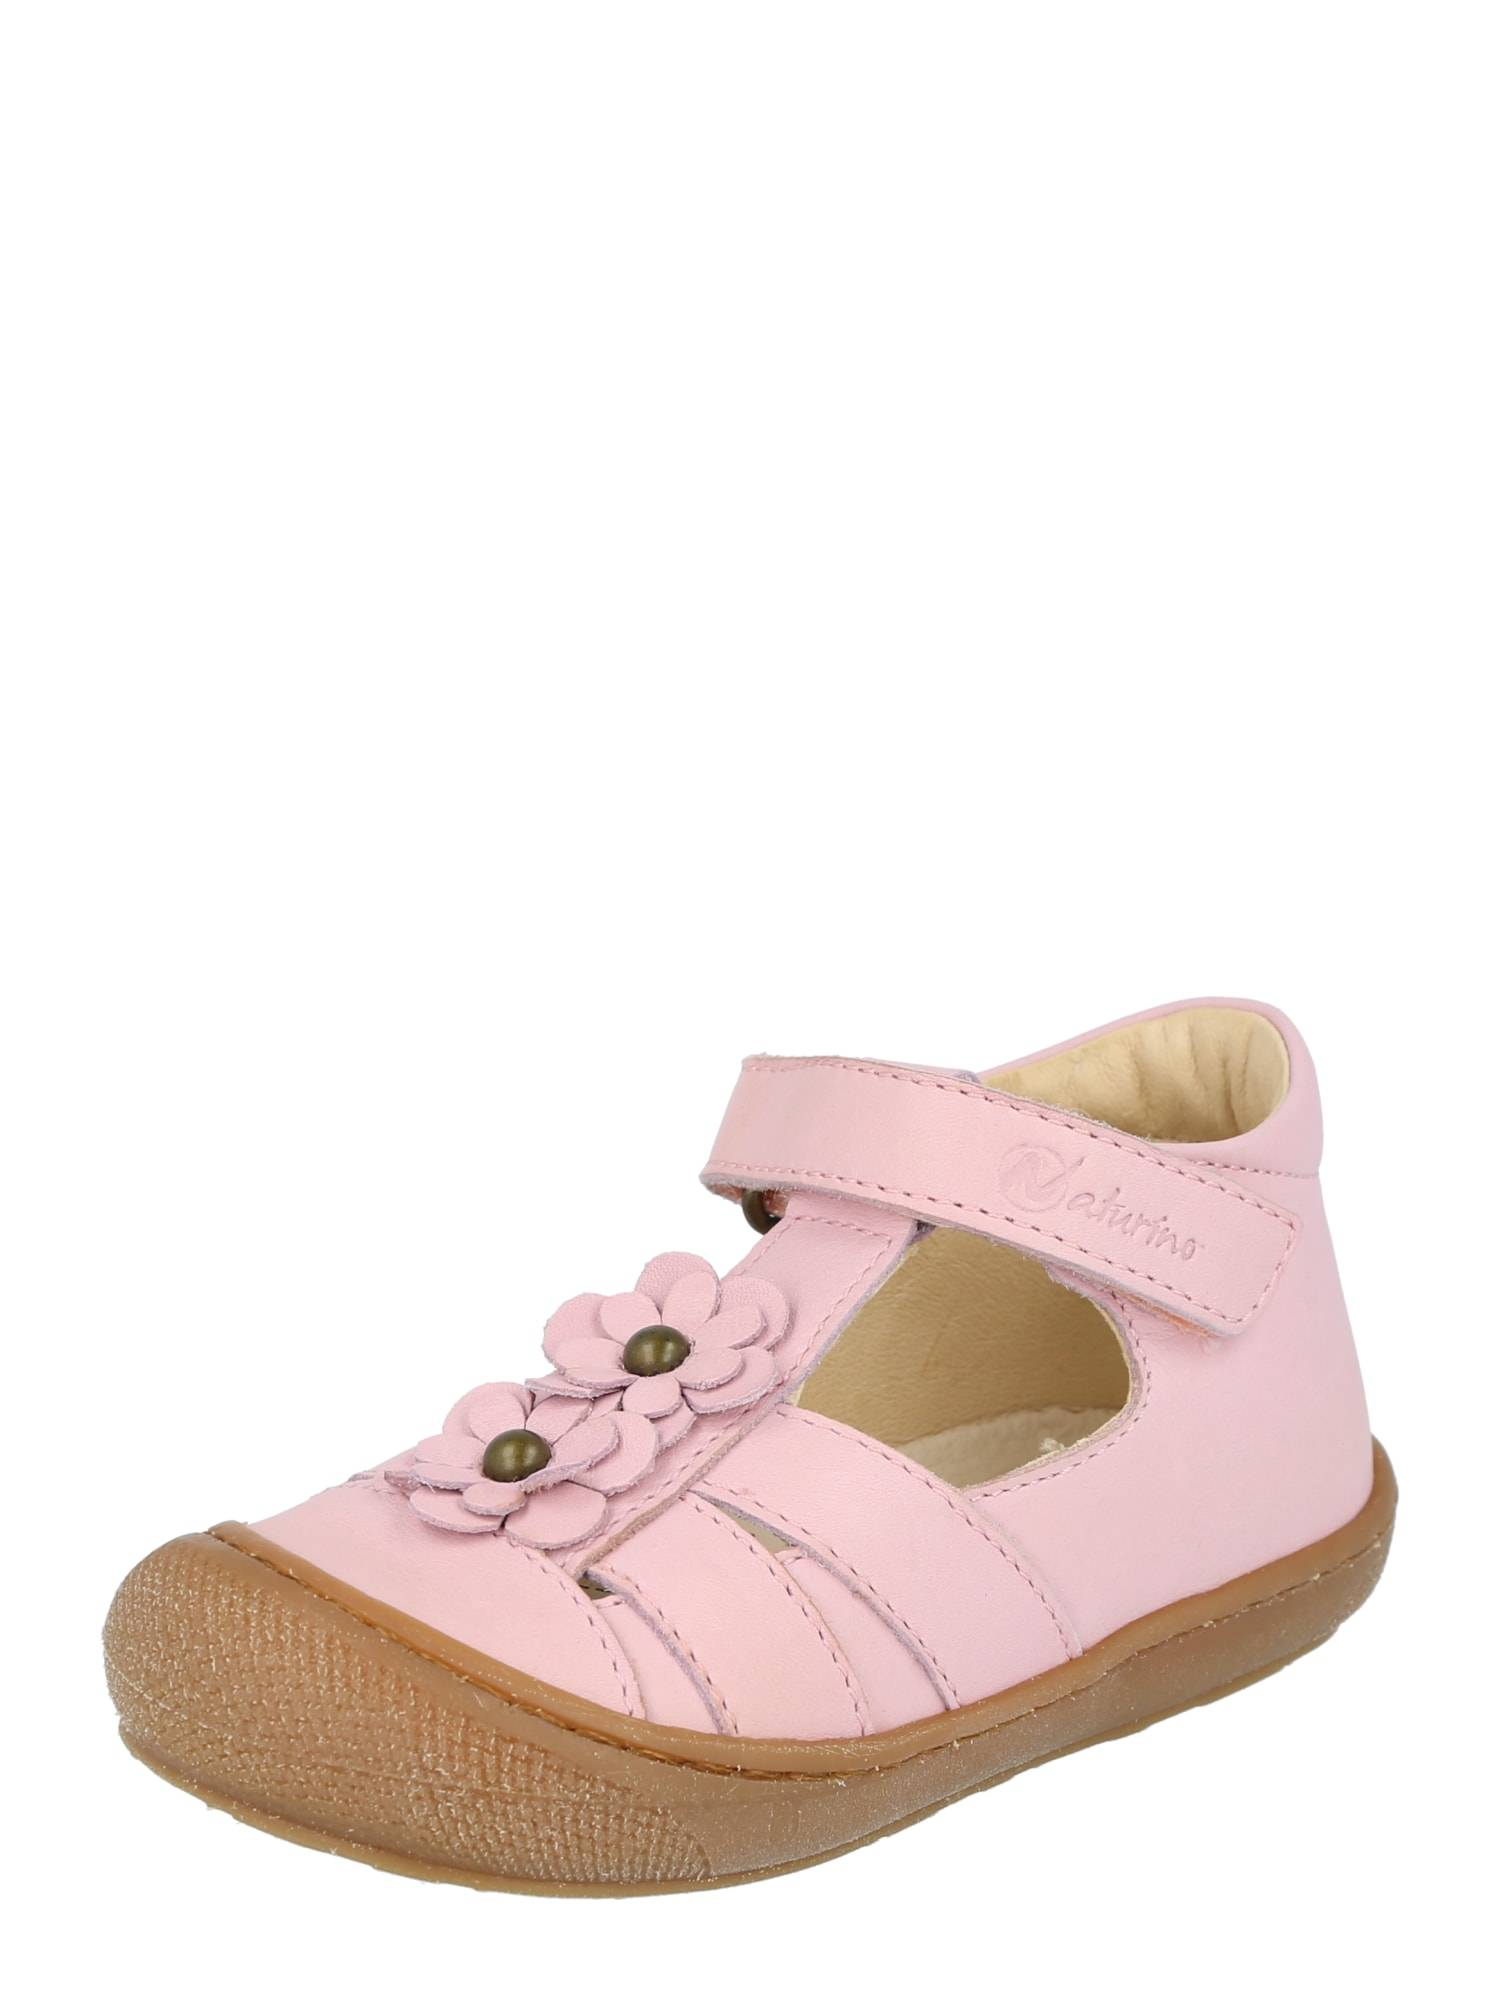 NATURINO Sandales 'MAGGY'  - Rose - Taille: 24 - girl